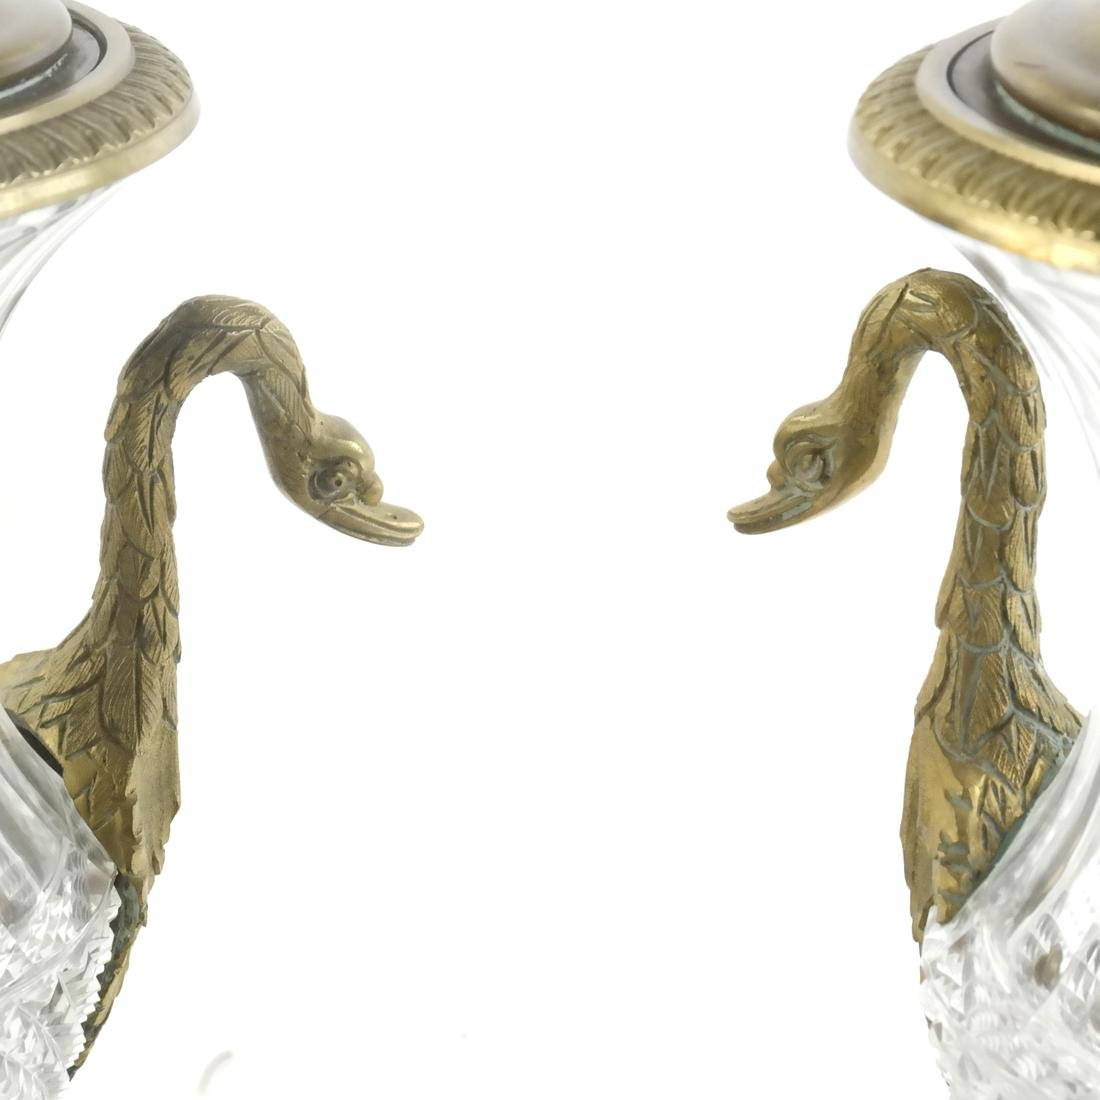 Pair of Classical Swan-Form Lamps - 2